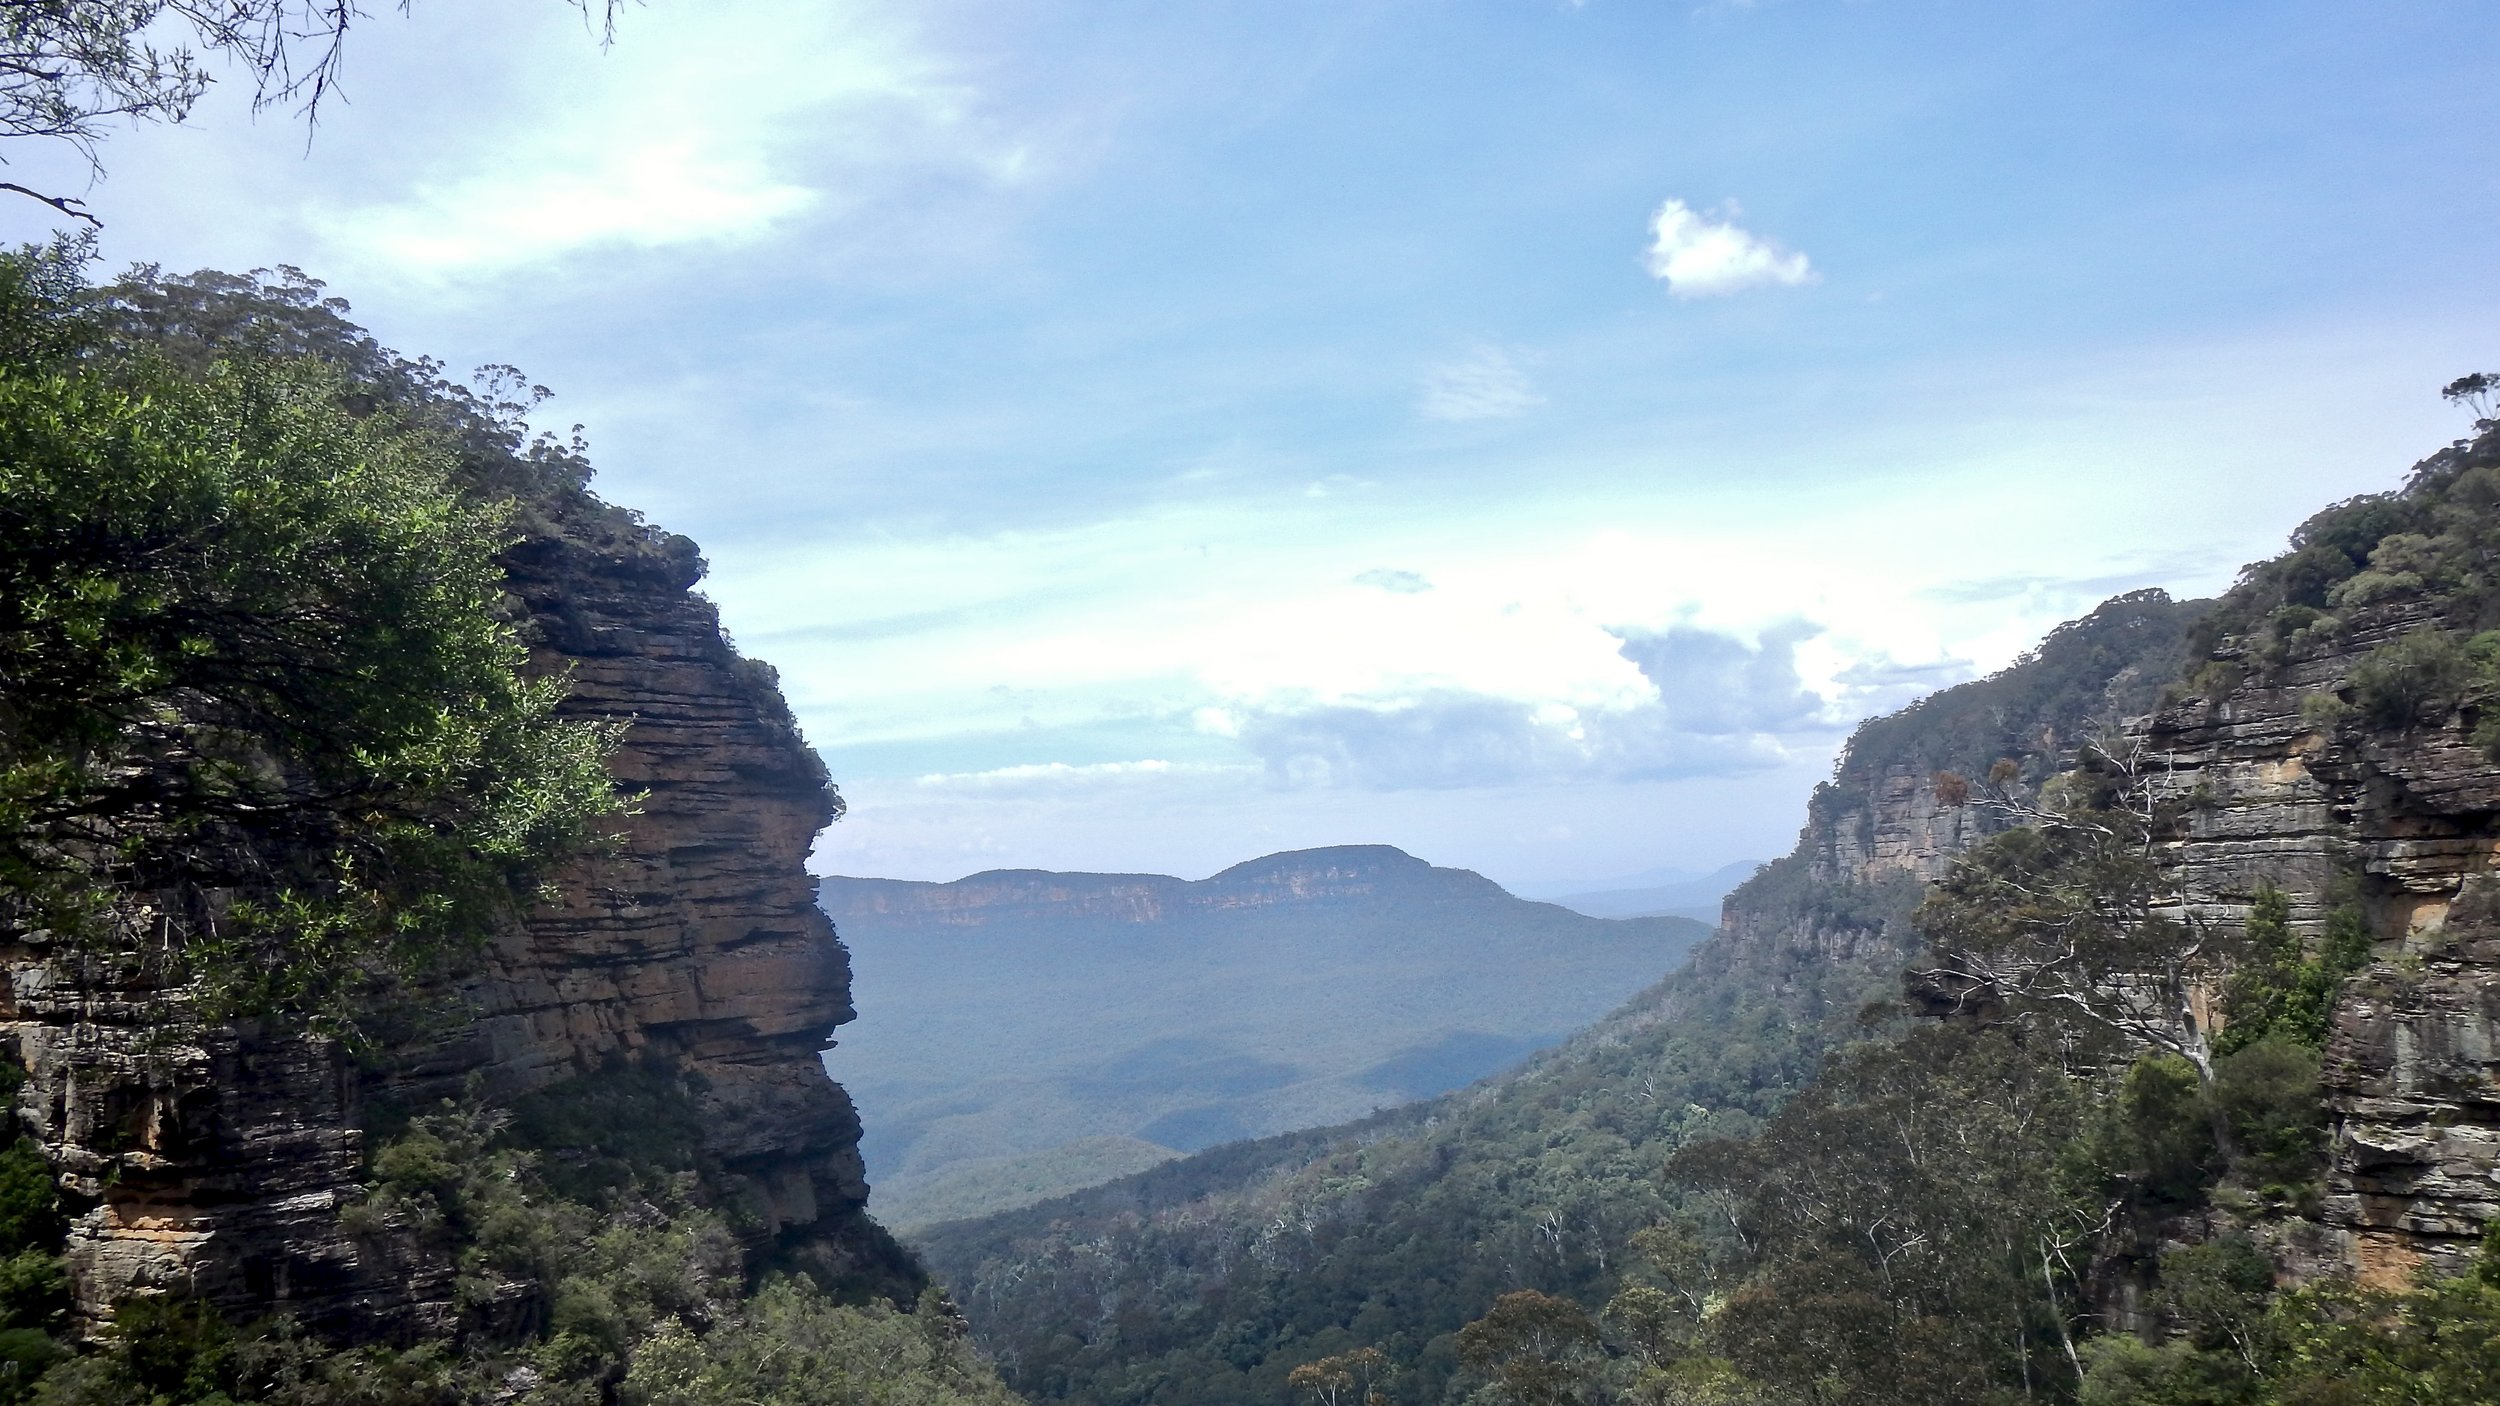 Blue Mountains Lookout, near Leura, New South Wales